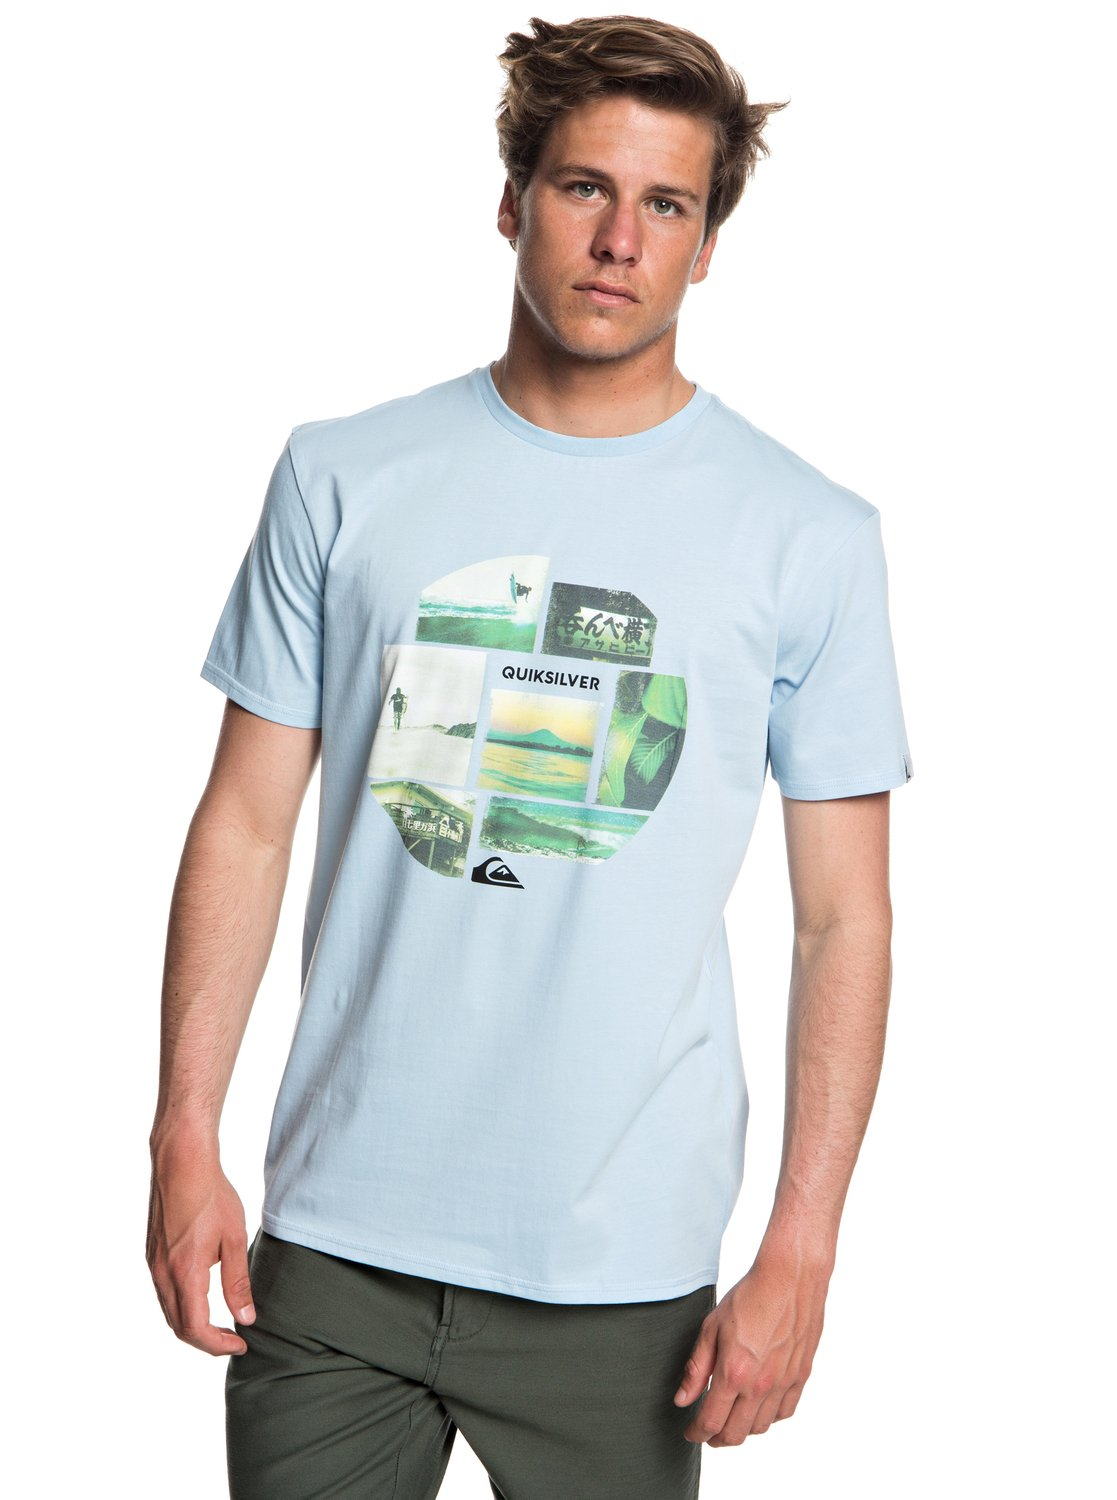 Quiksilver-Photo-Mix-Camiseta-para-Hombre-EQYZT05114